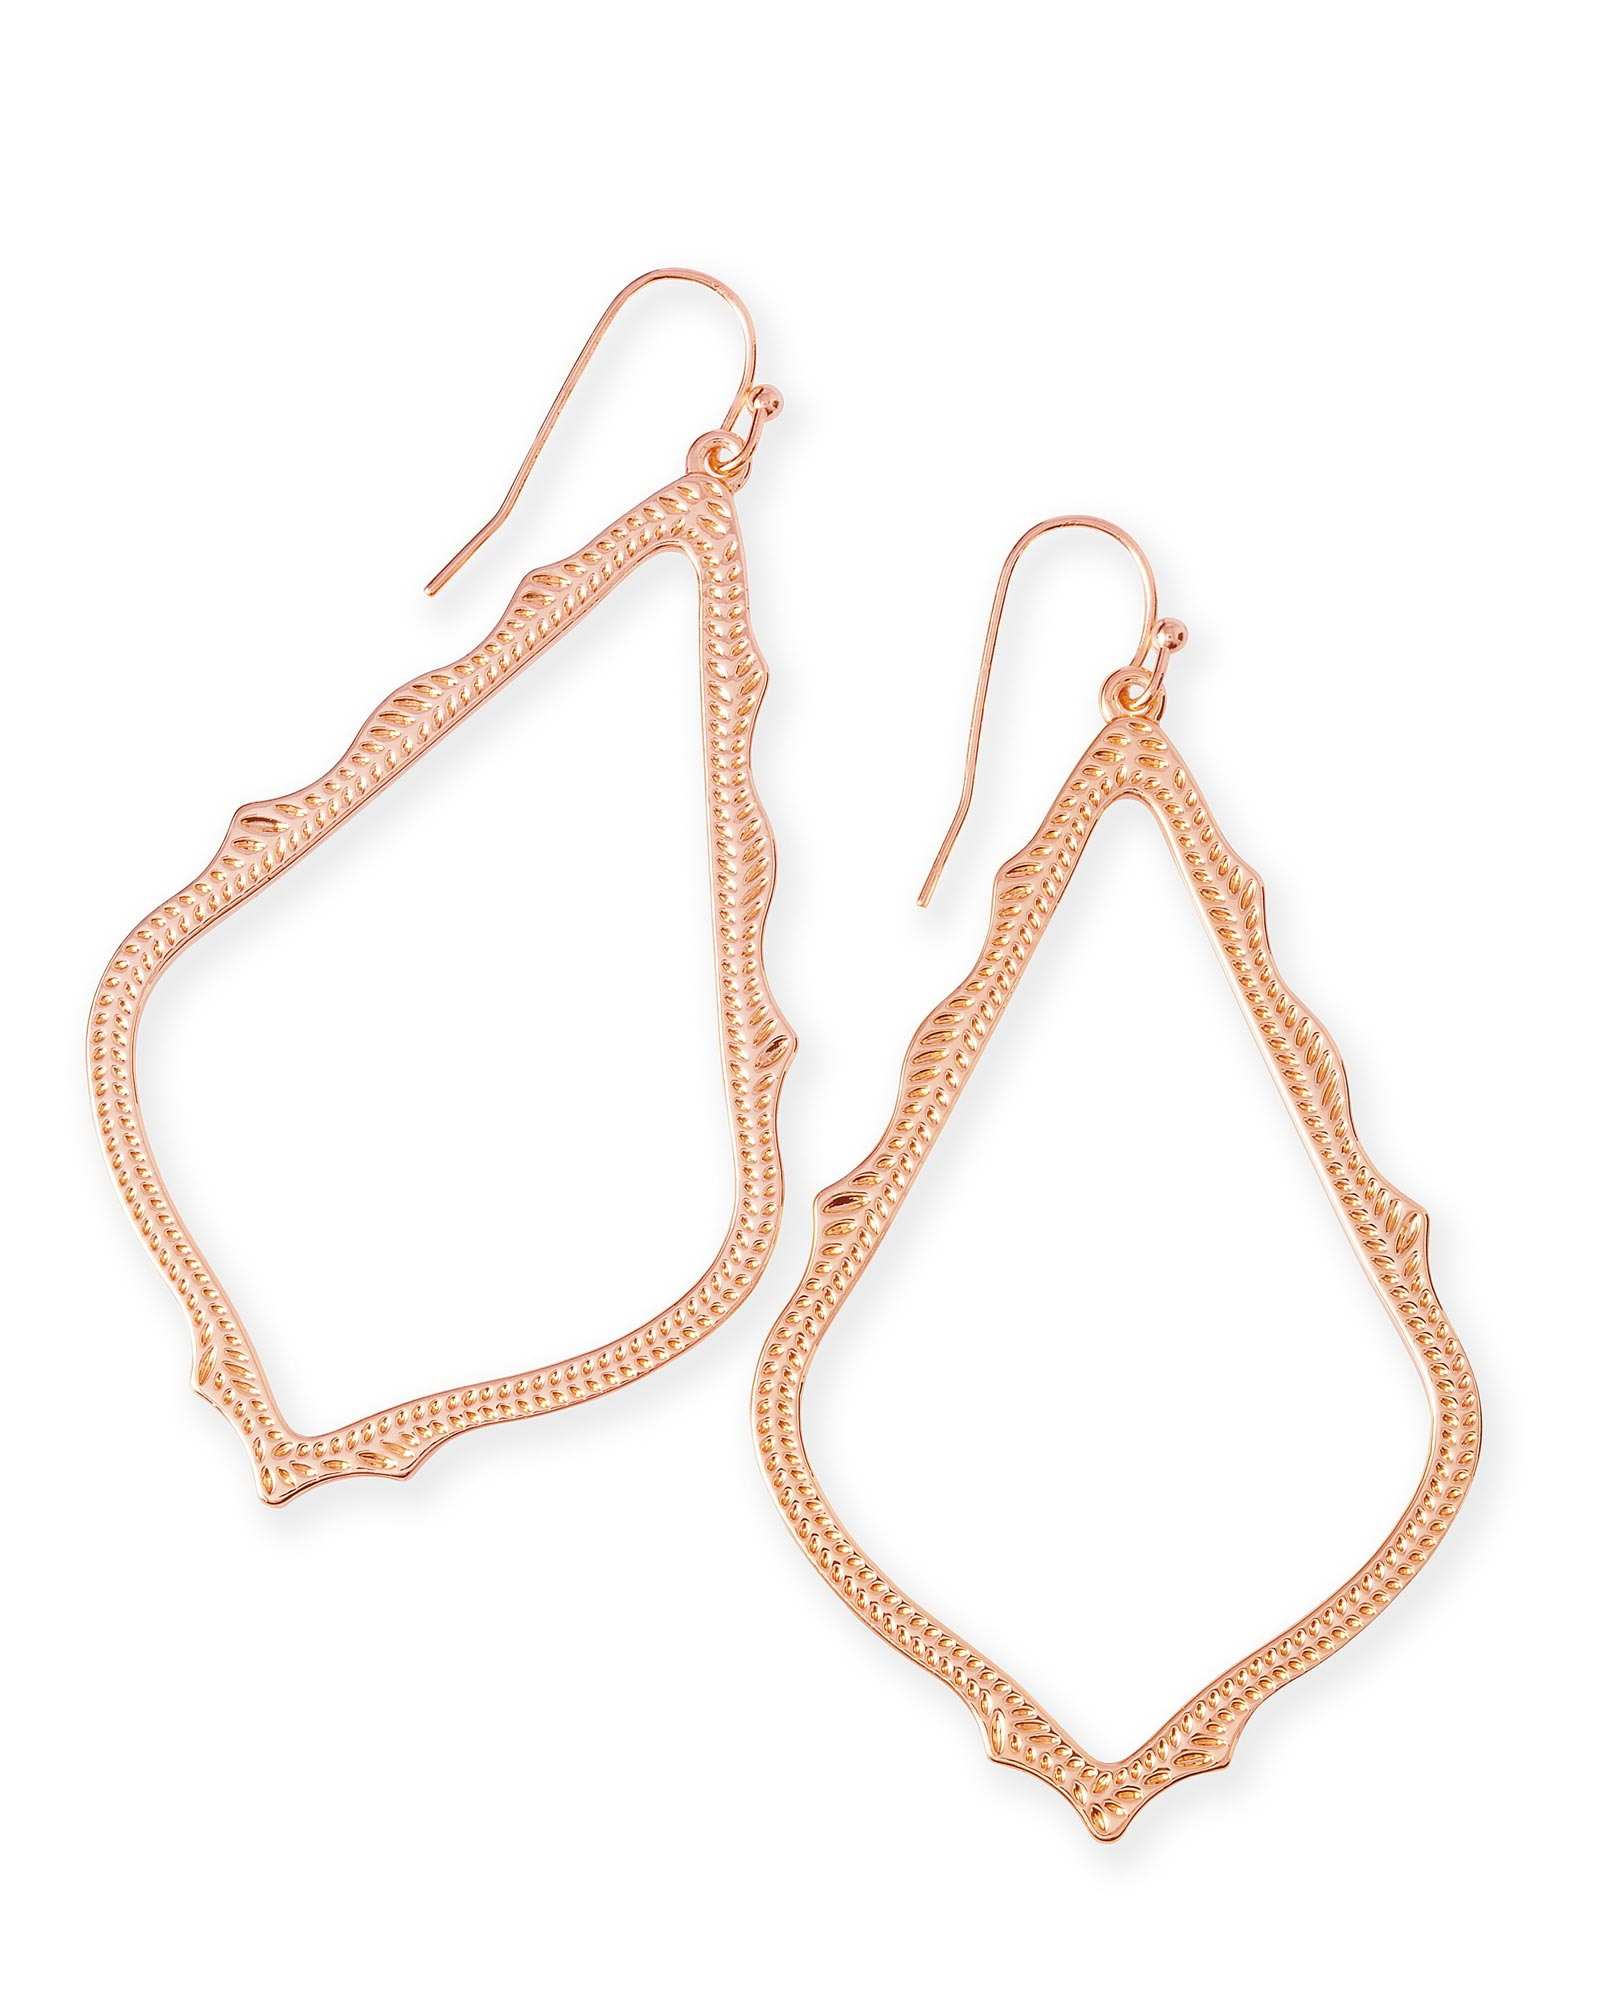 Sophee Drop Earrings in Rose Gold Kendra Scott Jewelry